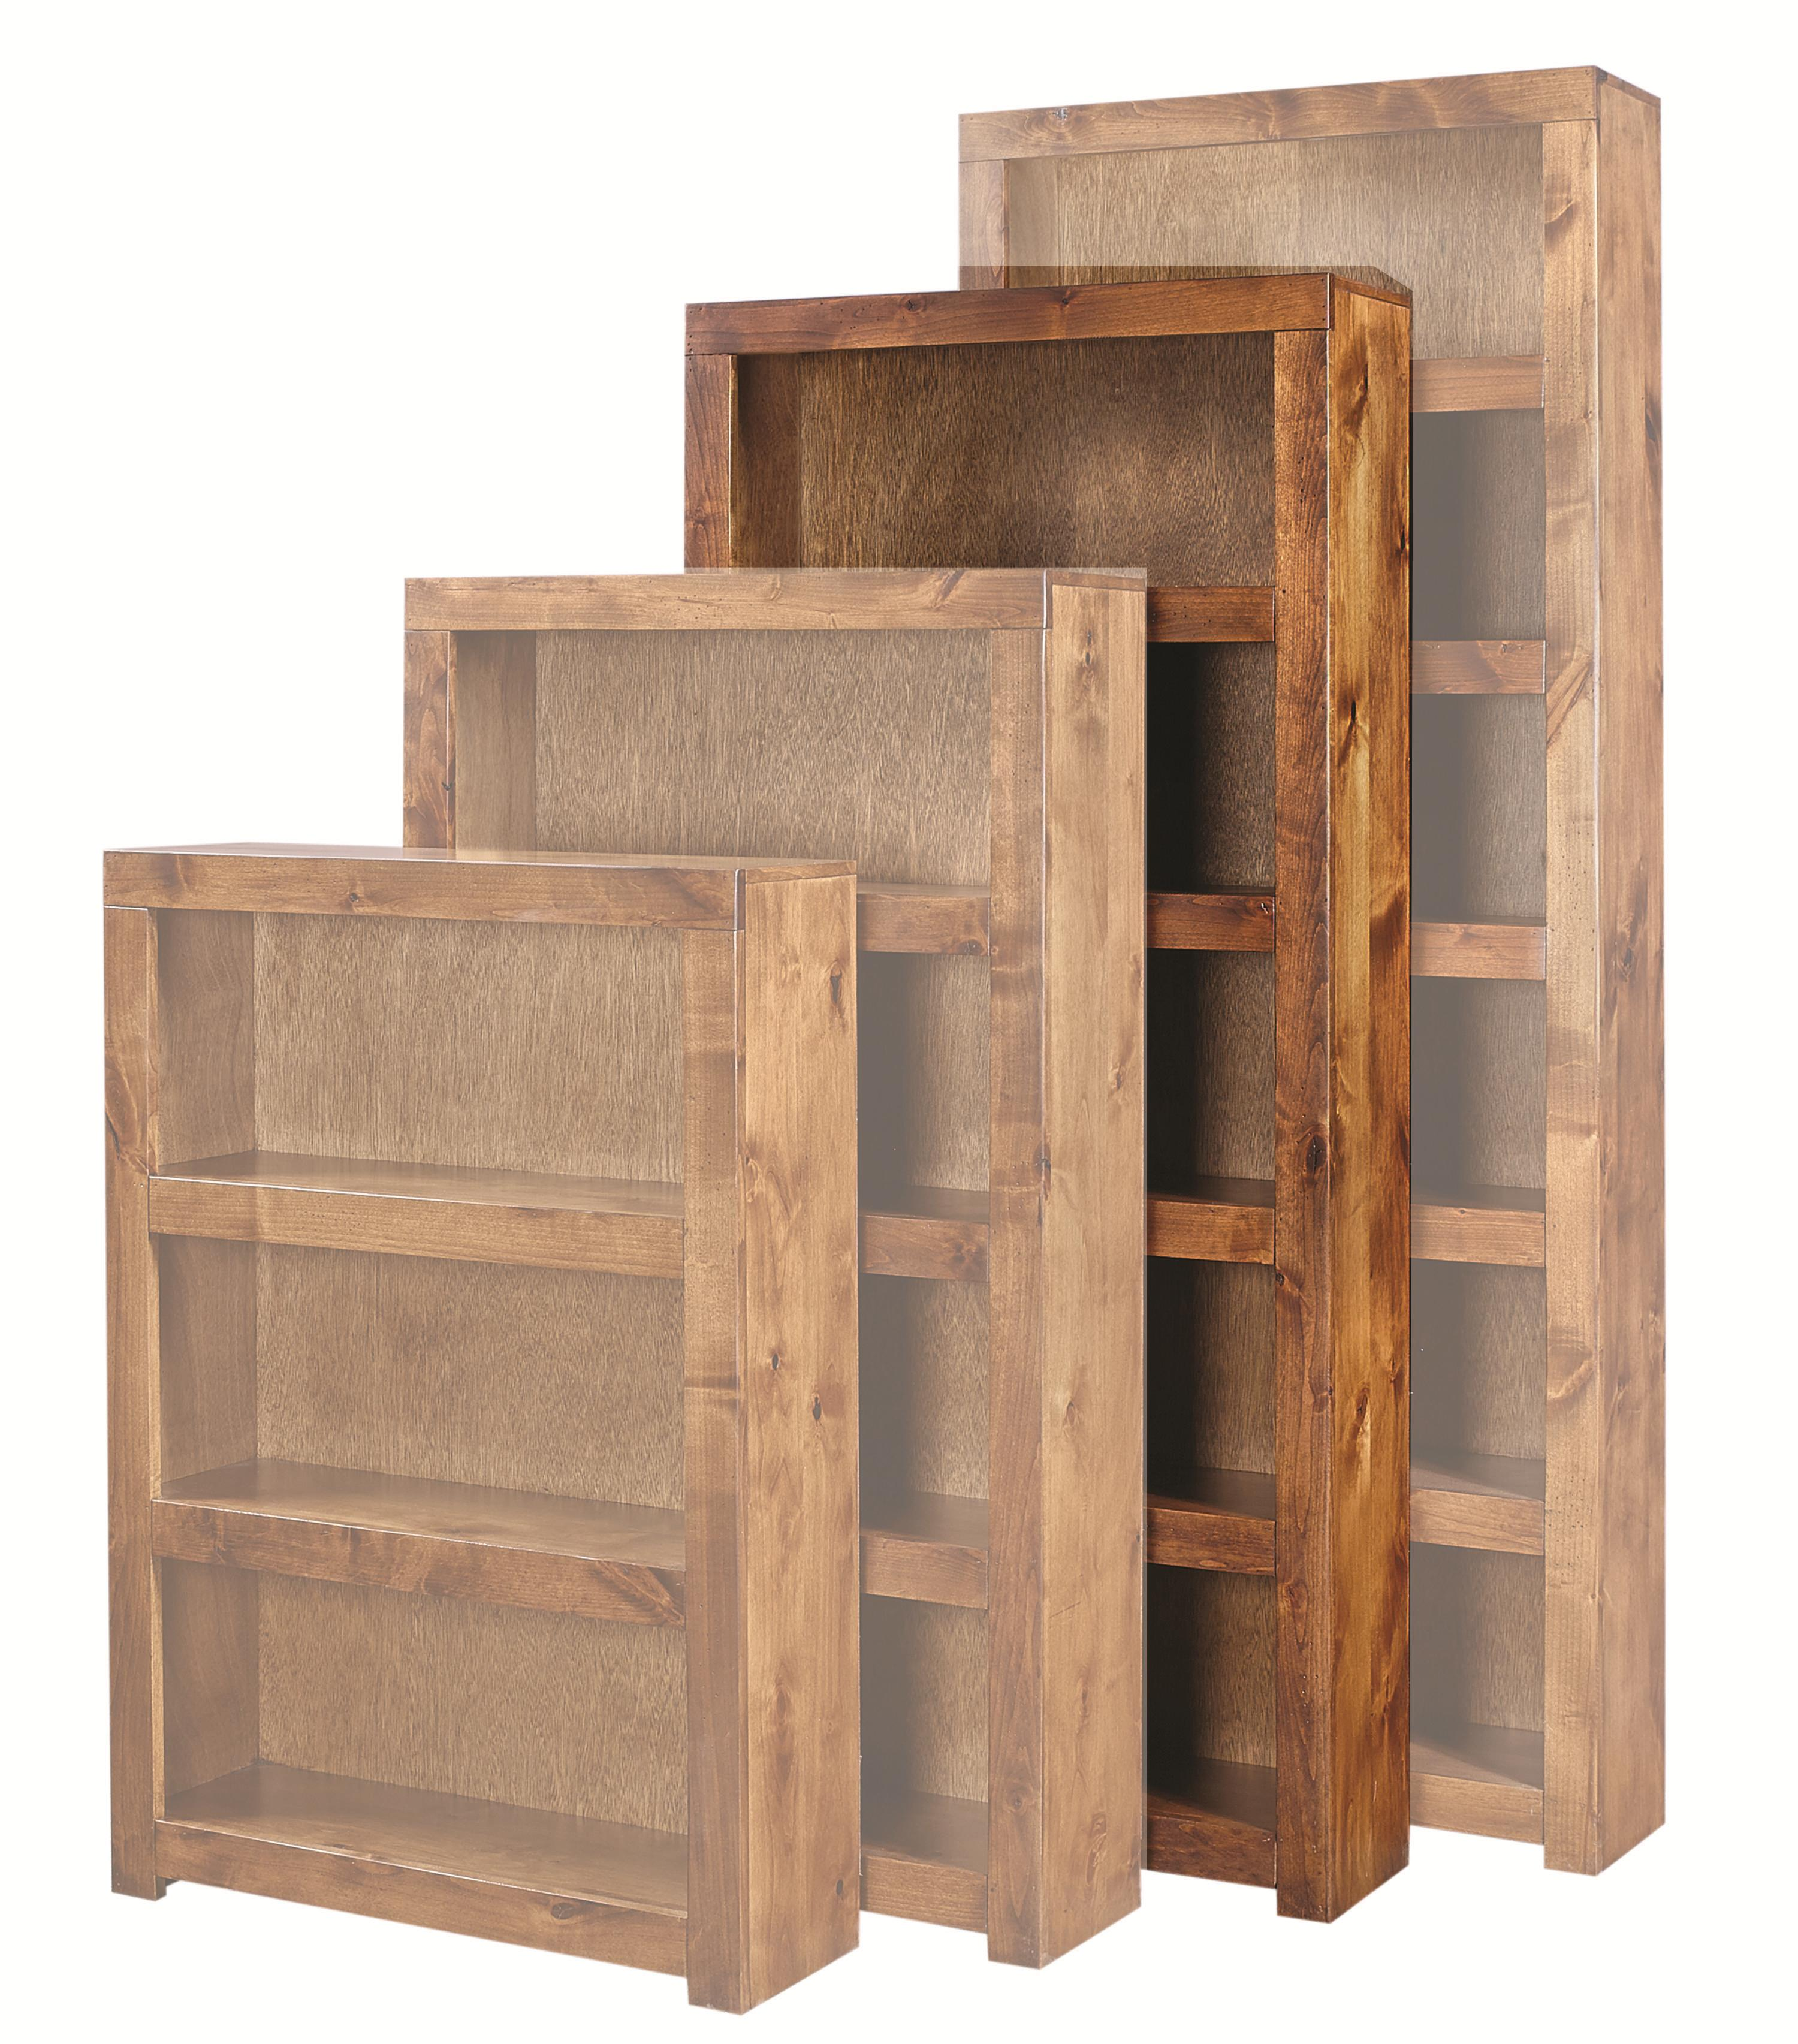 Contemporary Alder 72 Inch Bookcase by Aspenhome at Walker's Furniture